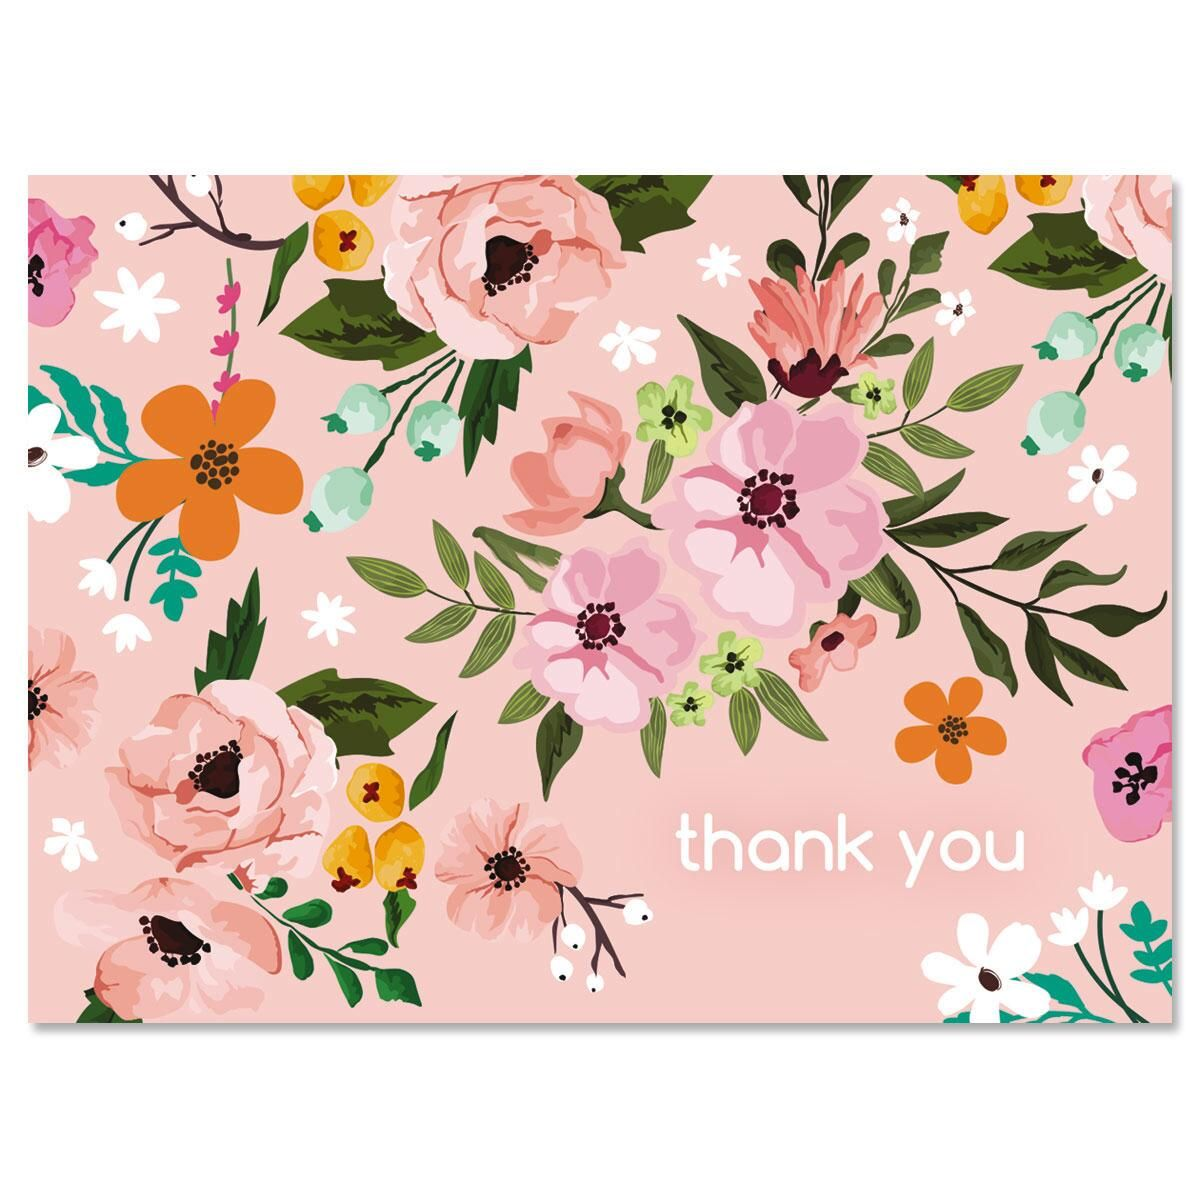 FG1 - 8 Flower Thank You Note Cards